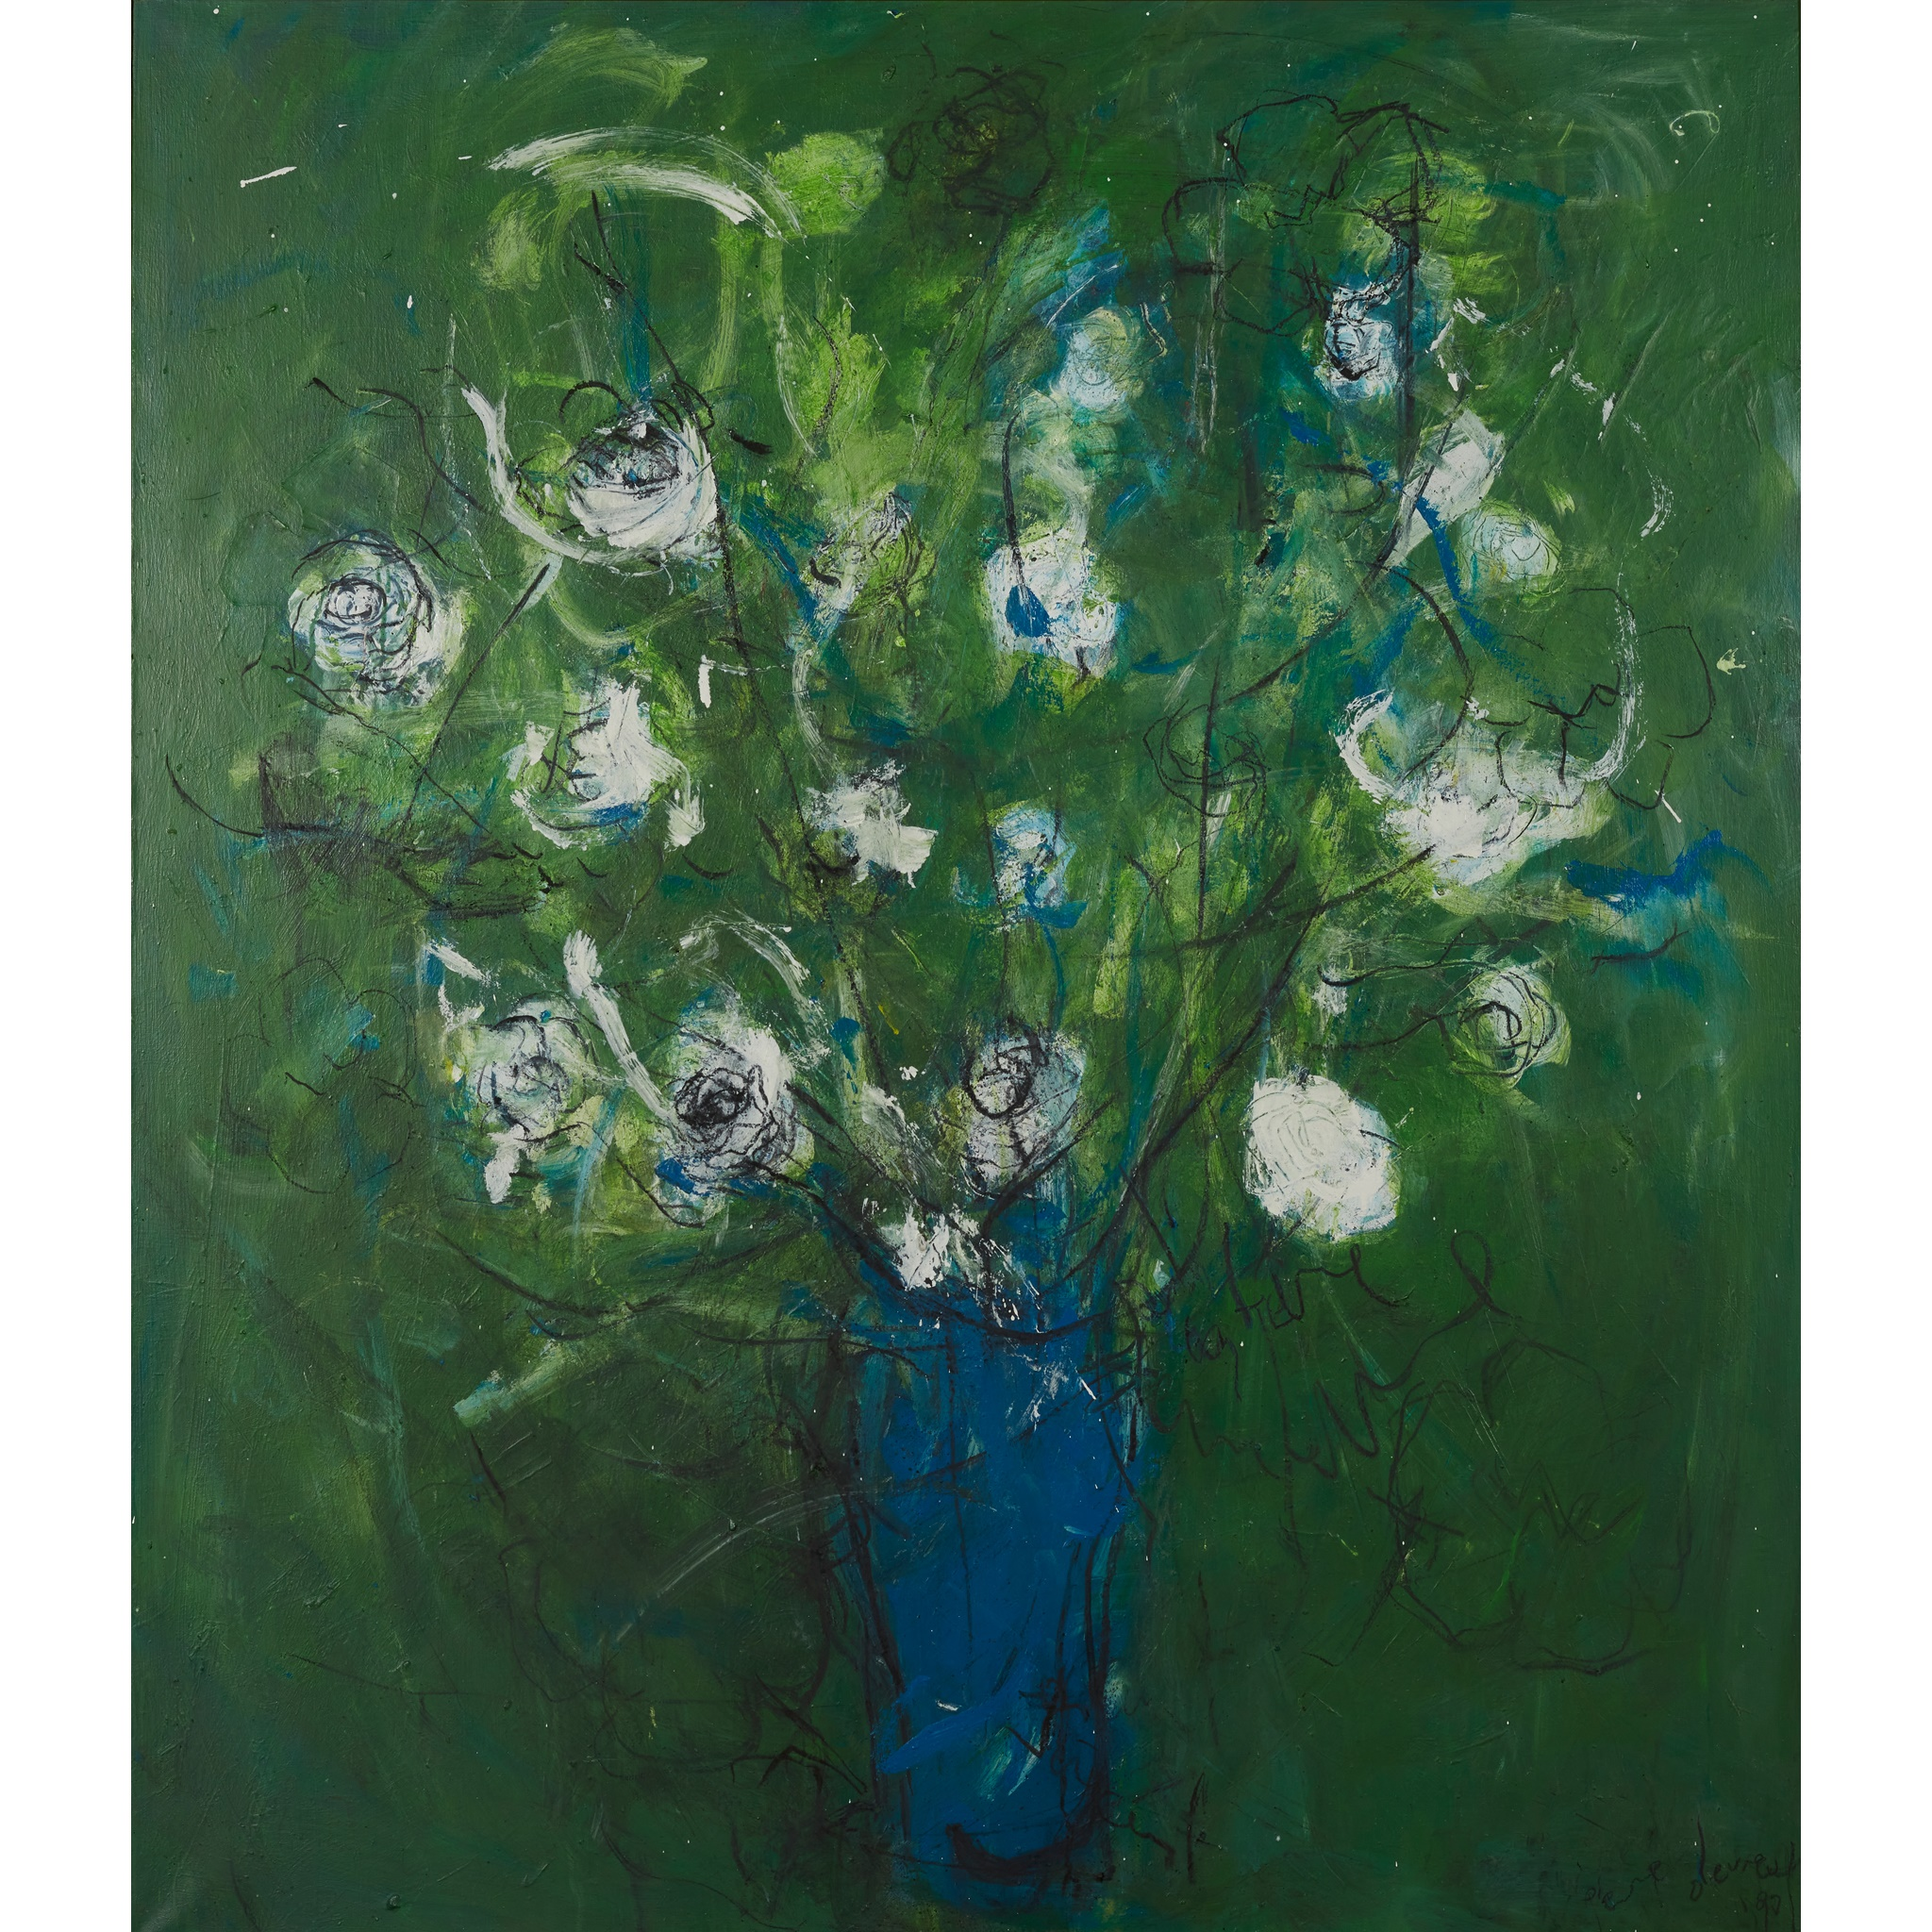 § PIERRE DEVREUX (BELGIAN 1955-) UNTITLED (STILL LIFE OF FLOWERS ON A GREEN GROUND), 1990